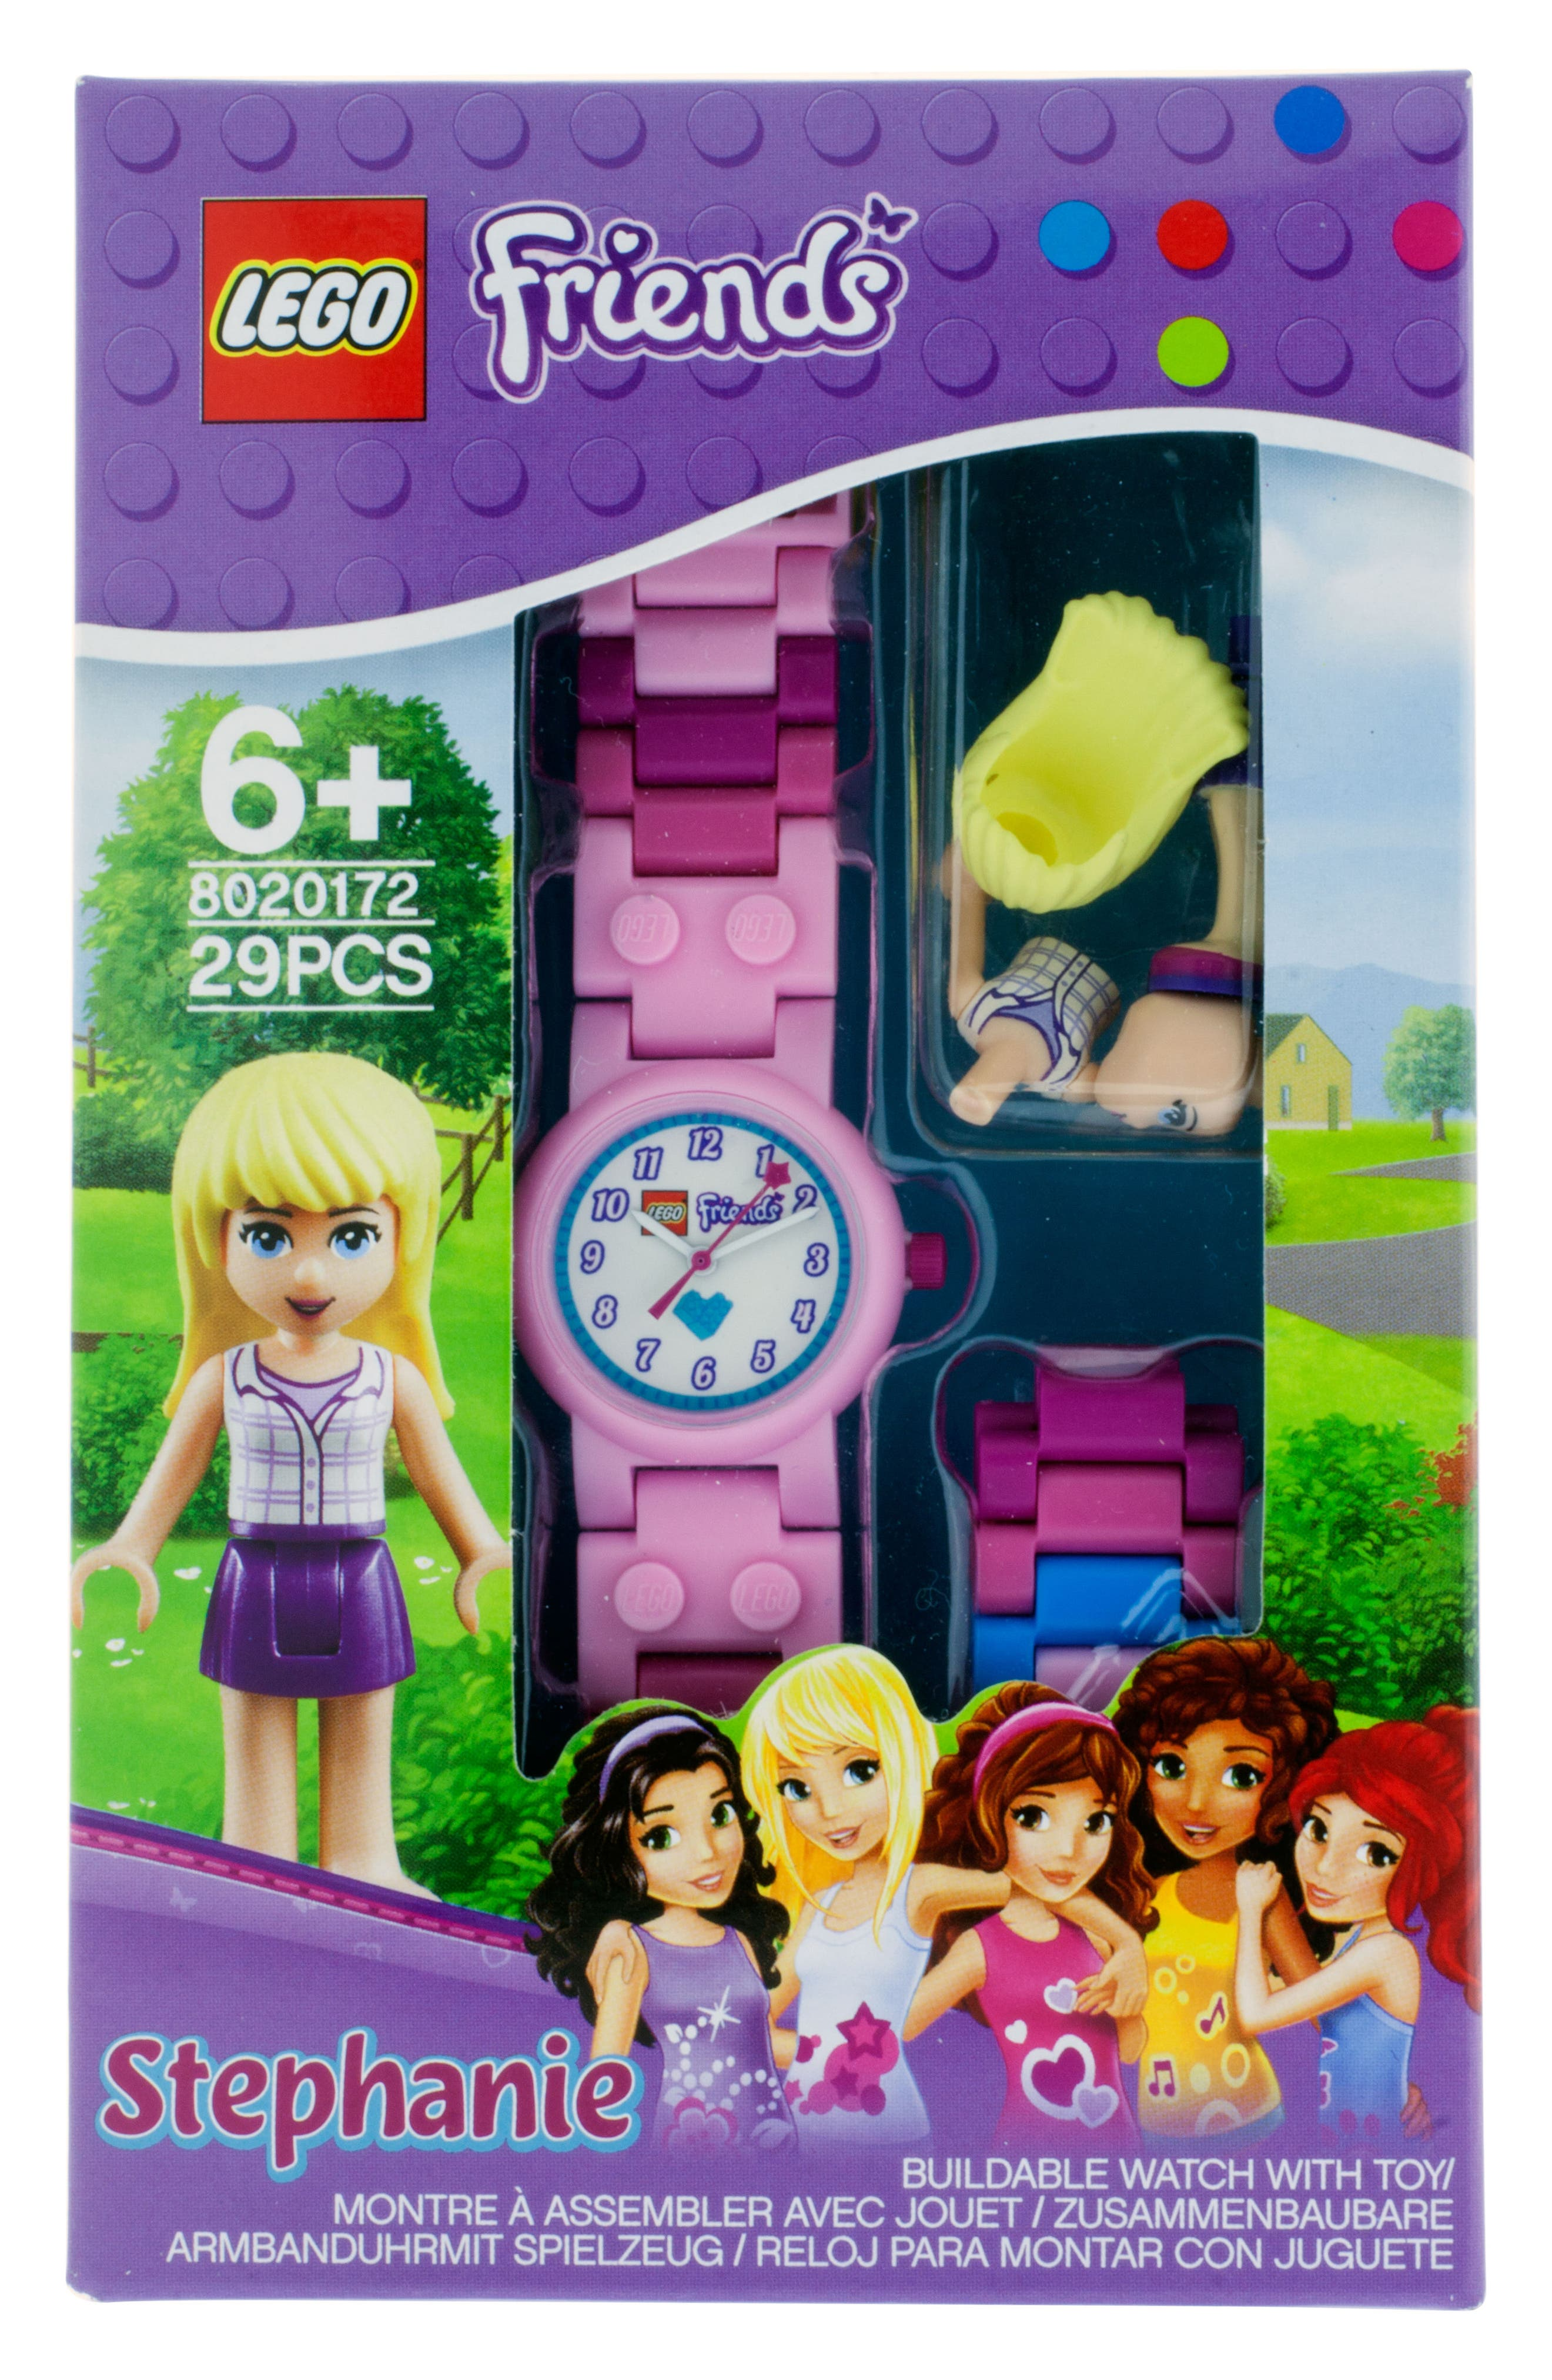 29-Piece LEGO Friends Stephanie Buildable Water-Resistant Watch & Figurine Set,                             Alternate thumbnail 3, color,                             Pink